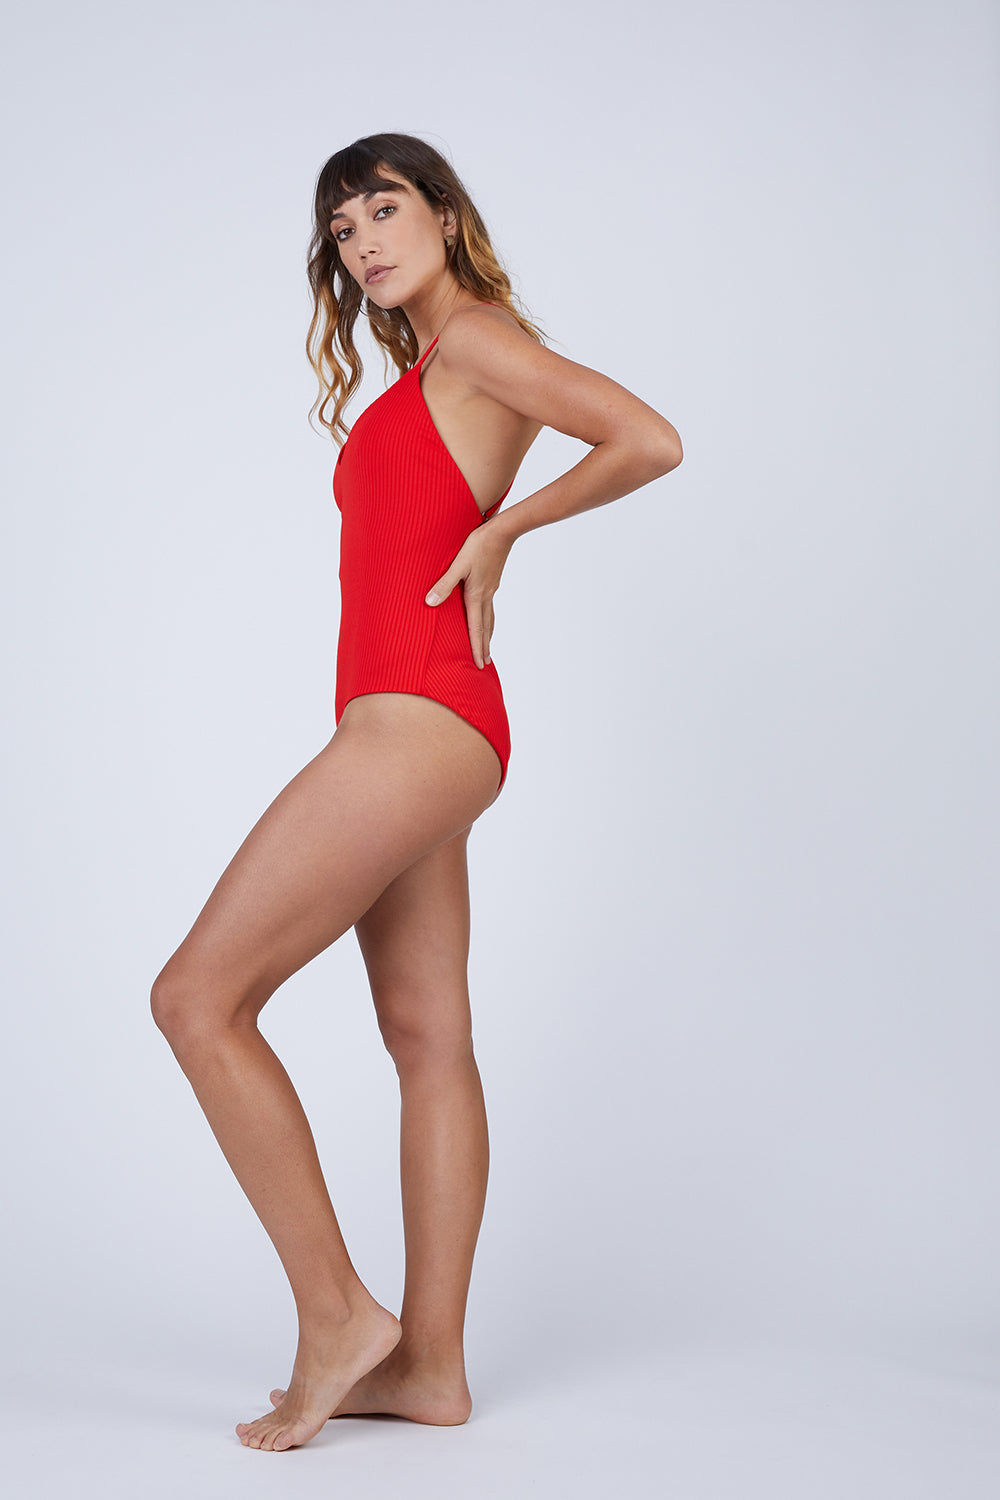 MARA HOFFMAN Emma Deep V-Neck One Piece Swimsuit - Red One Piece   Red  Mara Hoffman Emma Deep V Neck One Piece Swimsuit - Red deep v neckline  criss cross back straps  high cut leg  moderate coverage  Front View